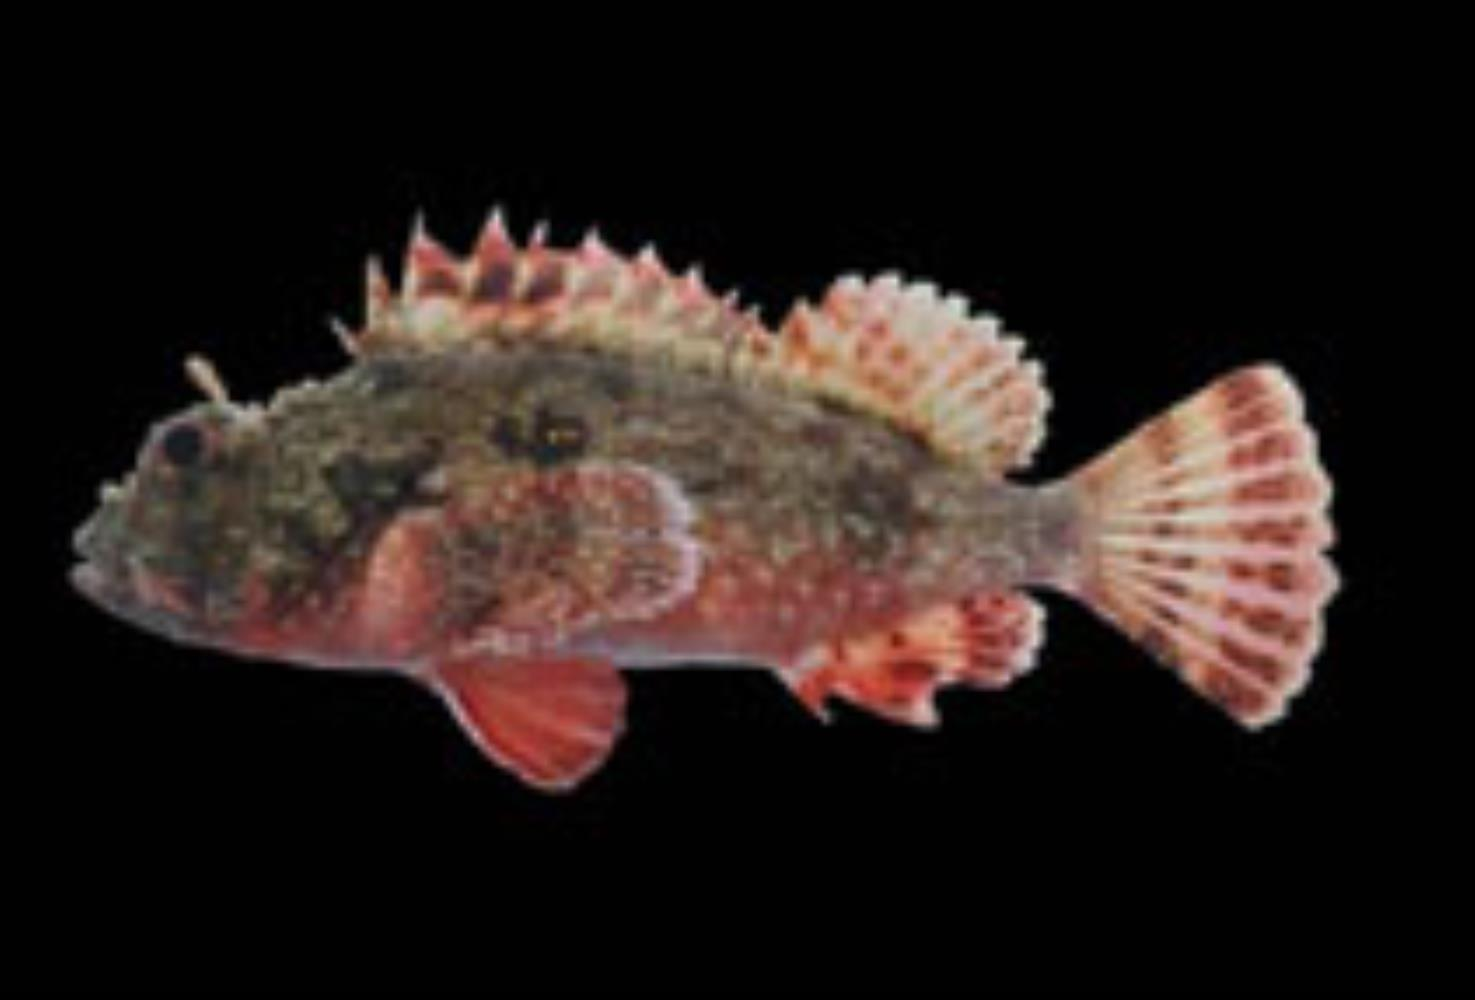 Player Scorpionfish